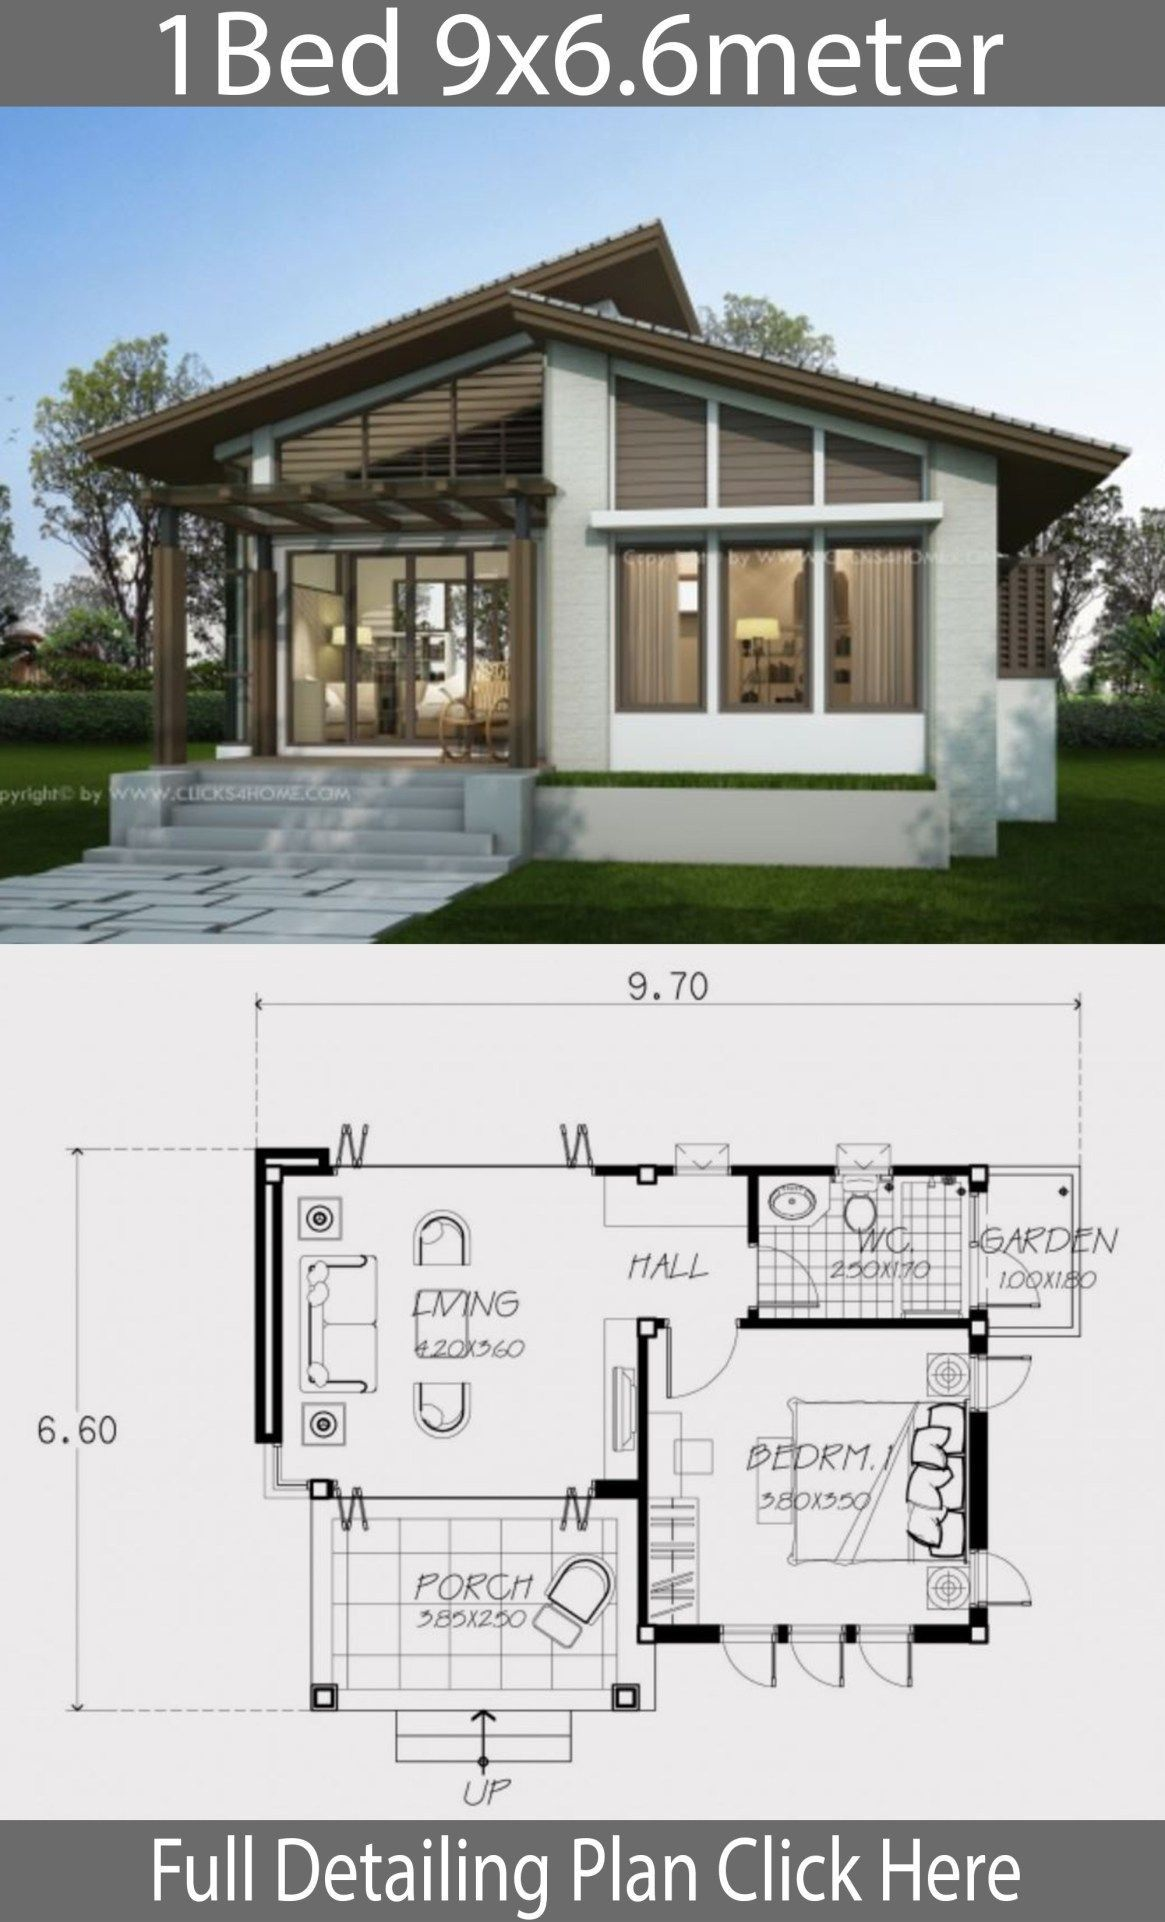 Small Modern House Plans One Floor 2020 In 2020 Small House Design Plans One Bedroom House Small House Style